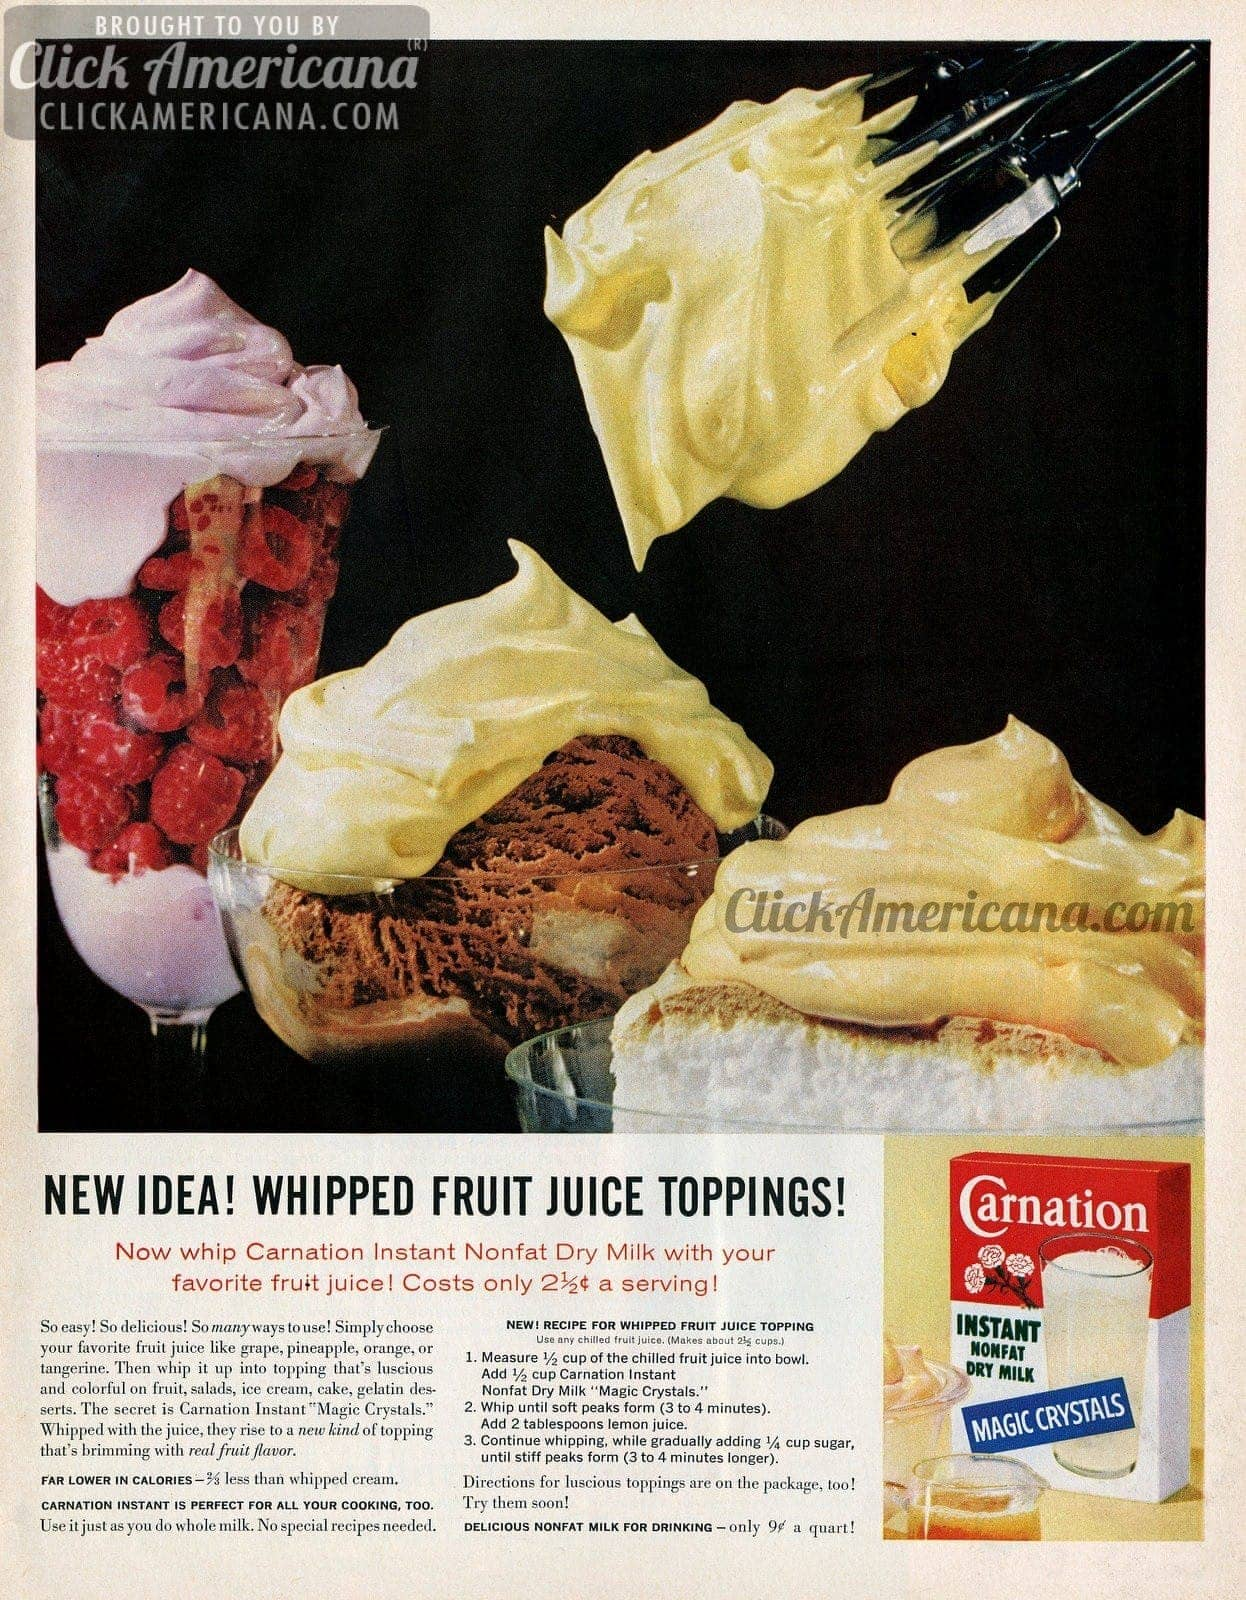 New idea! Whipped fruit juice toppings (1961)